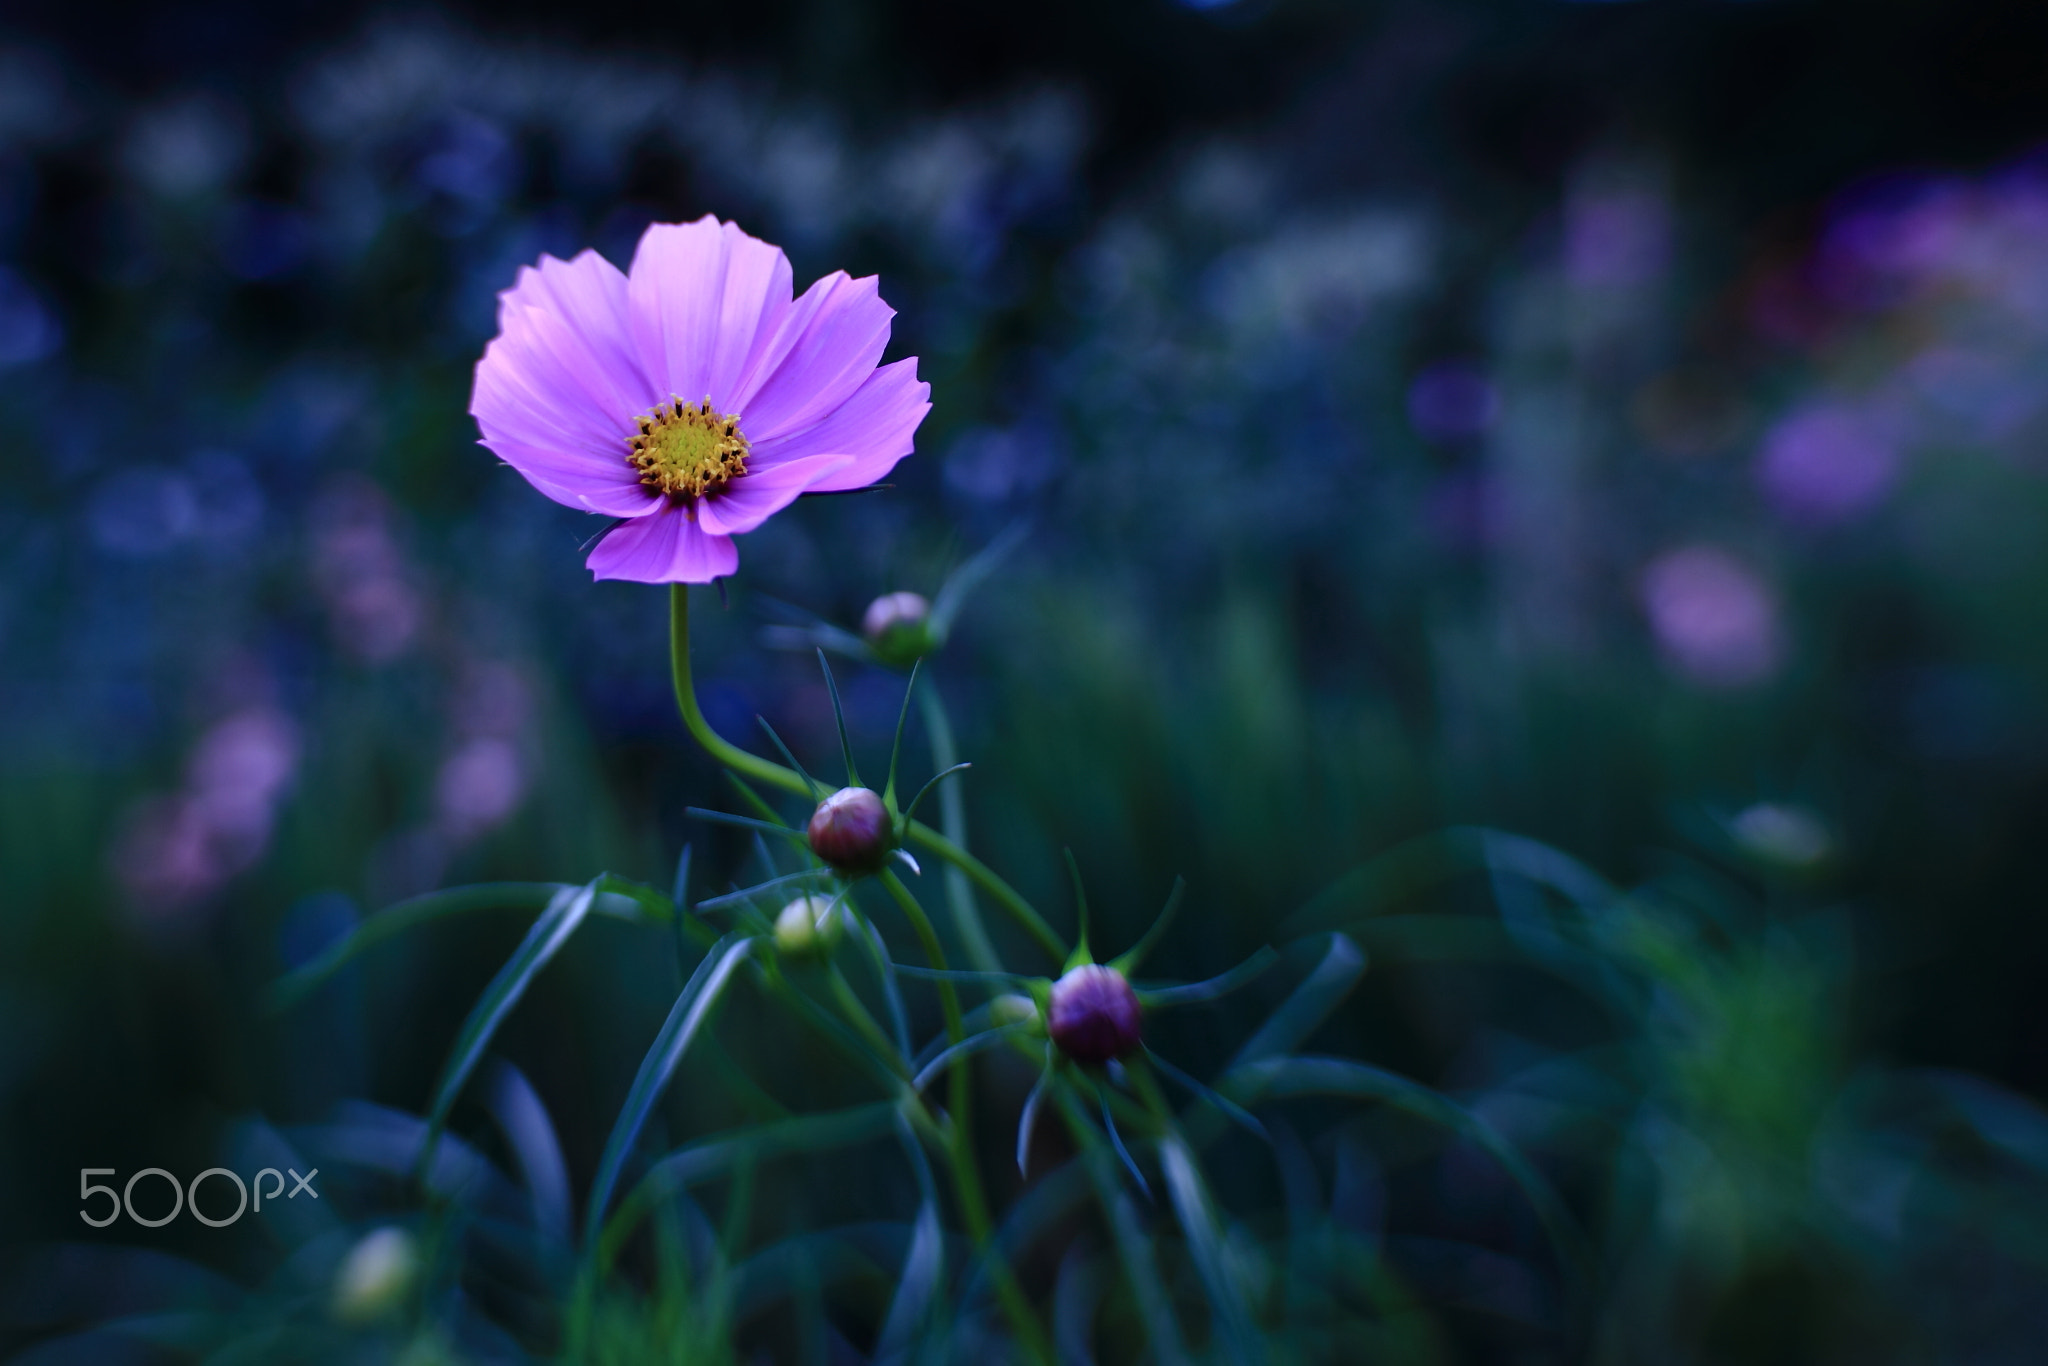 Photograph Cosmos by Shihya Kowatari on 500px